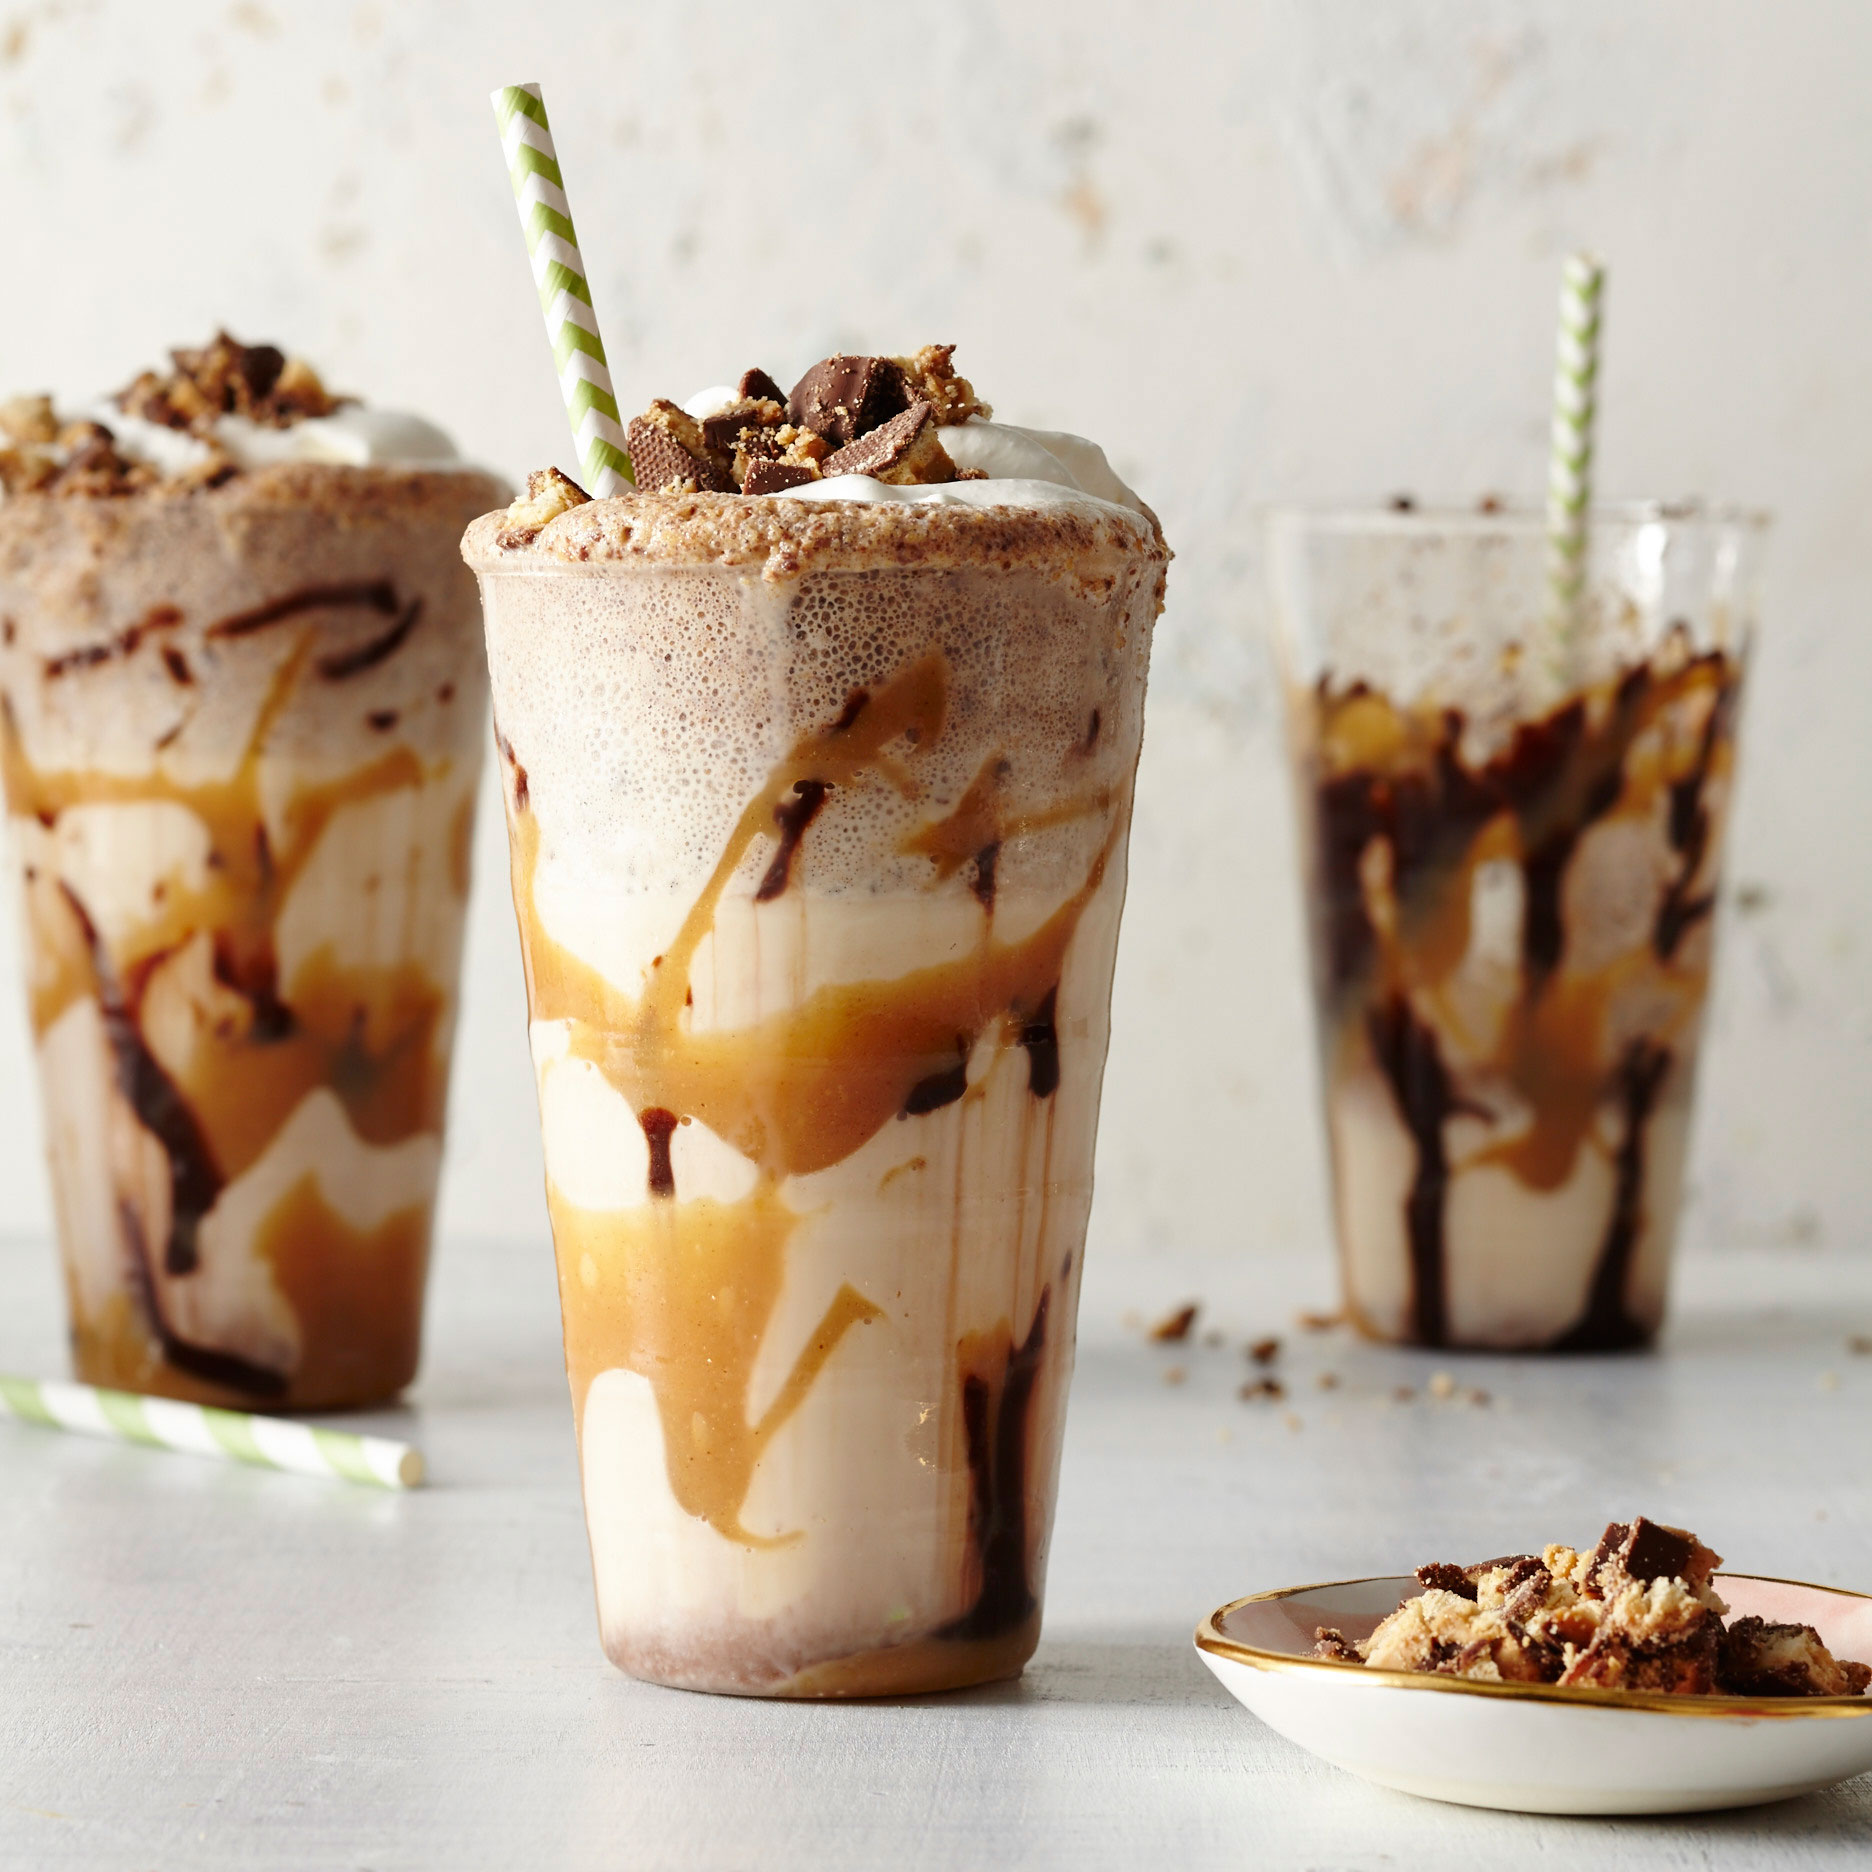 Delicious Milkshakes To Make At Home